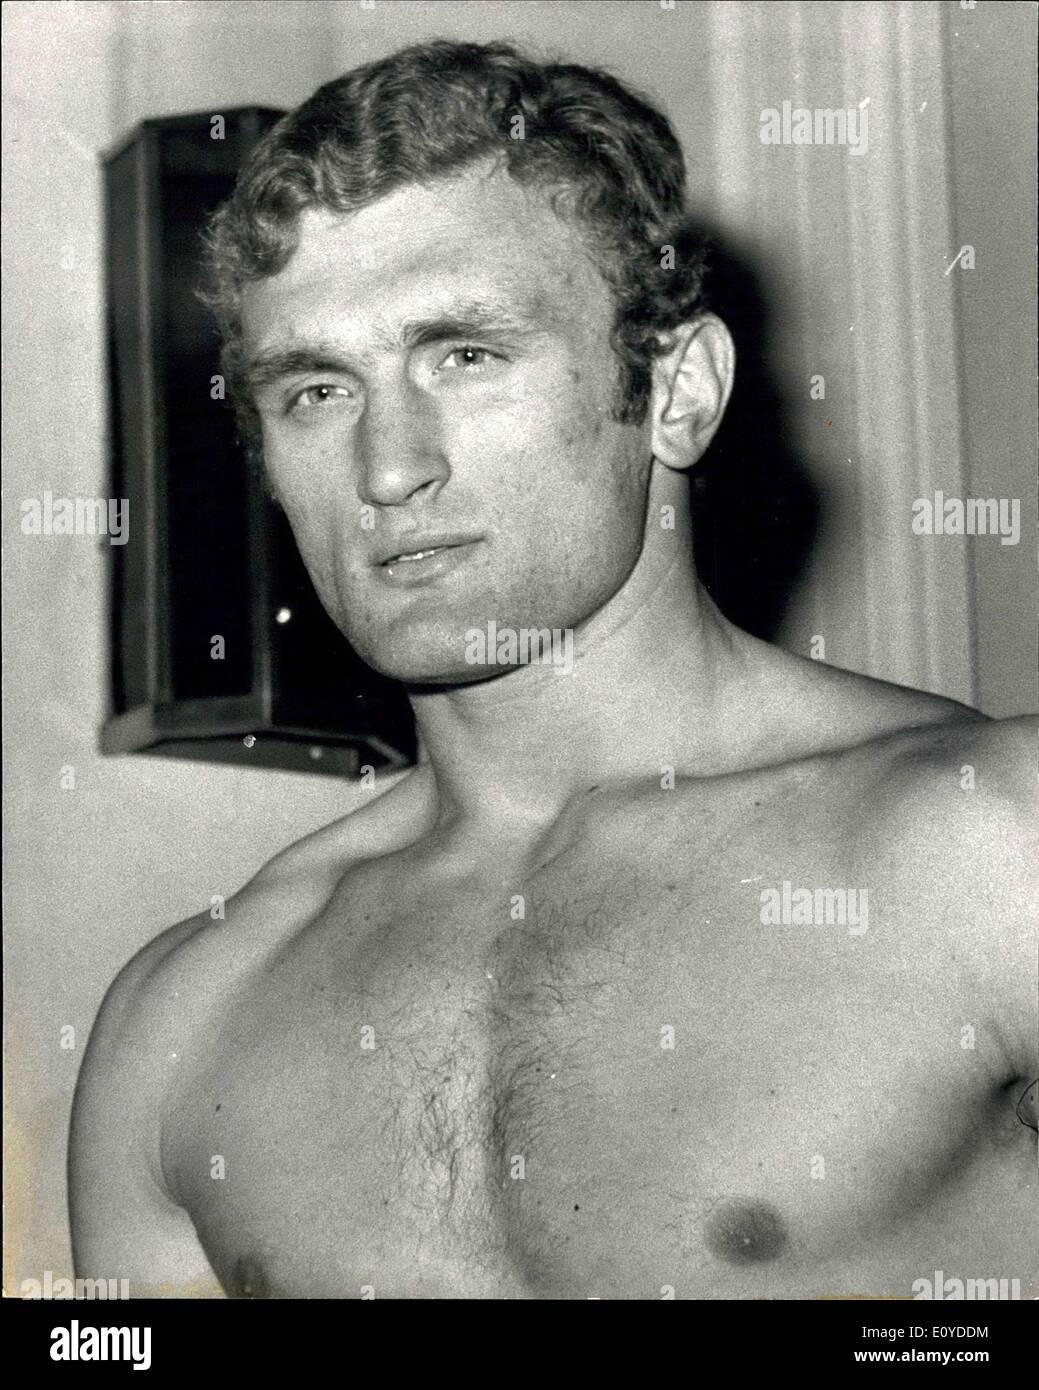 Dec. 12, 1969 - Charlie Polite And Joe Bugner Weigh-In For Tonight''s Heavyweight Fight: American heavyweight Charlie Polite, from Springfield, Massachusetts, and Britain's Joe Bugner, the Huntingdonshire heavyweight , weighed in for their contest at the Albert Hall in London tonight. Photo shows Joe Bugnera pictured at today's weigh-in. - Stock Image